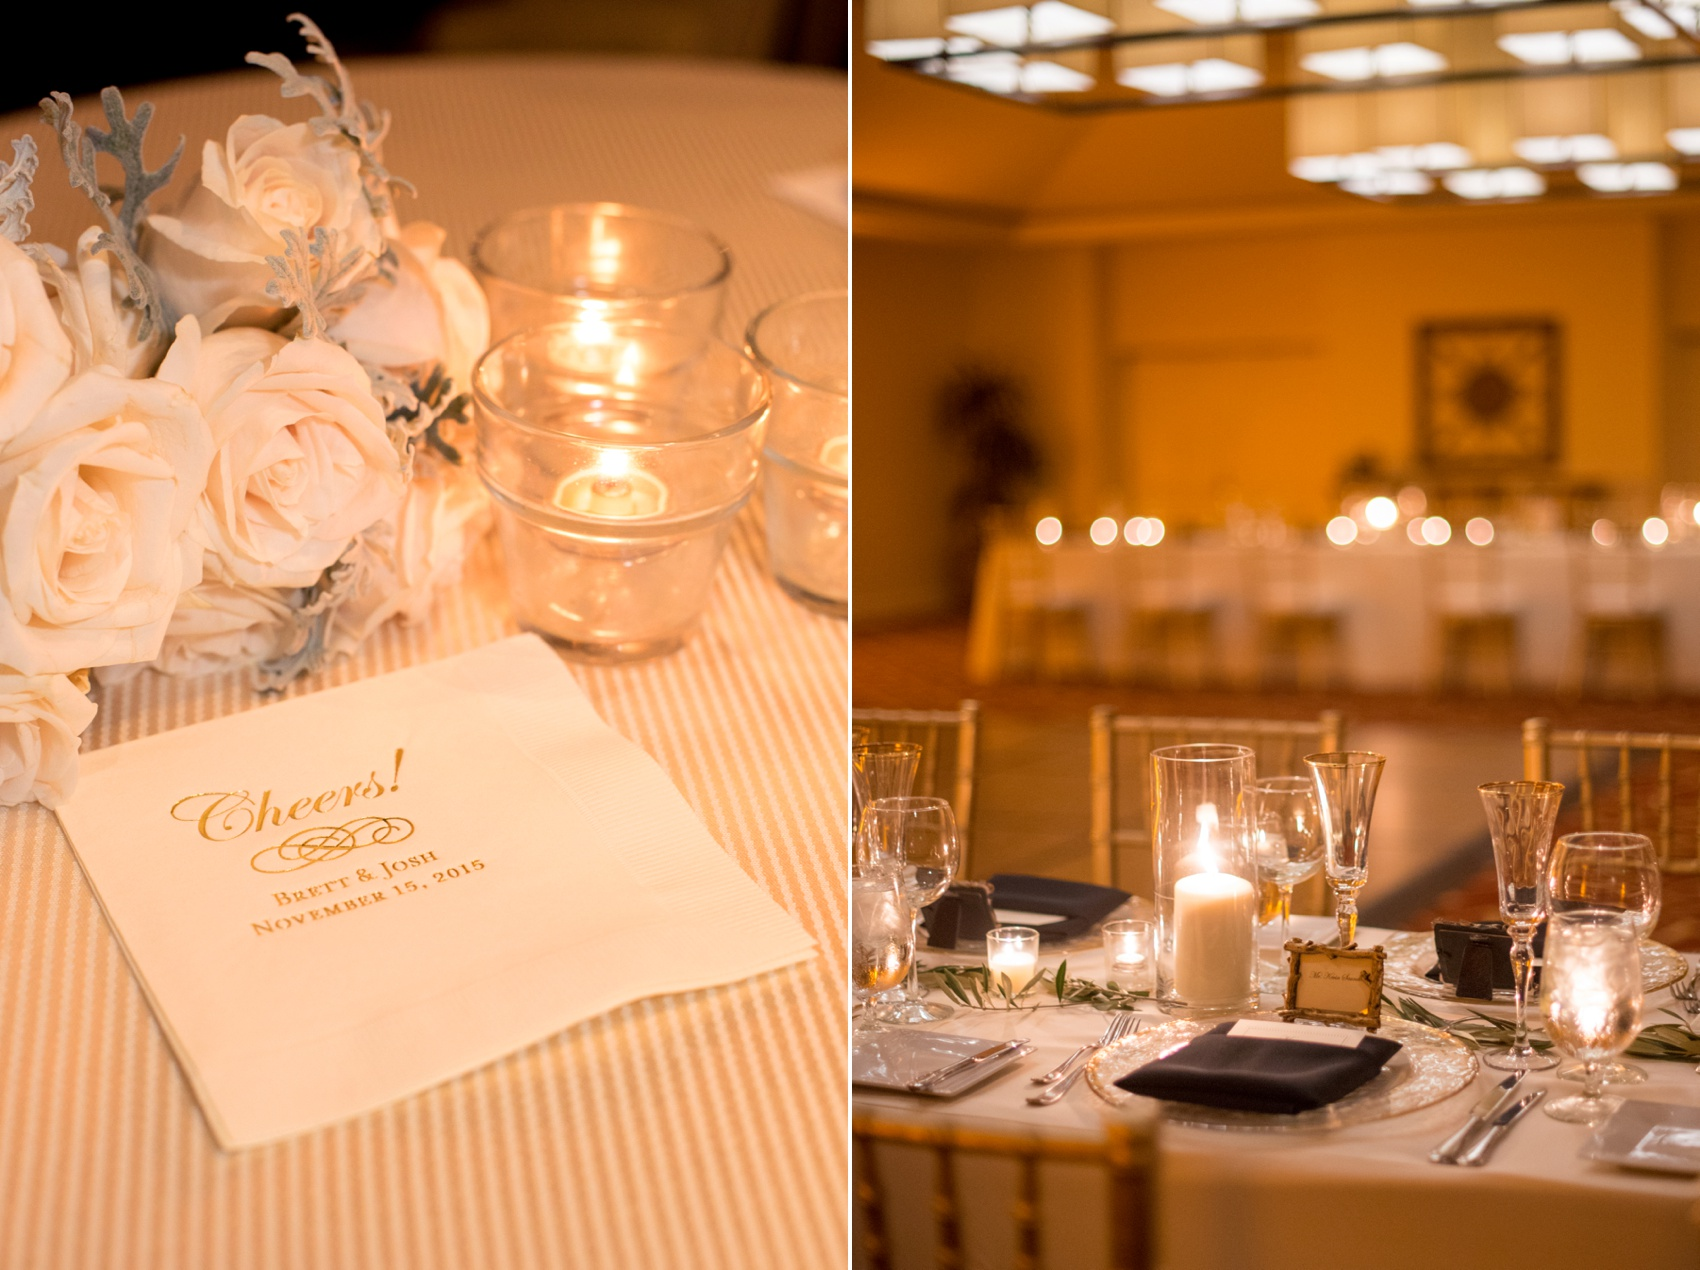 Estancia La Jolla wedding photography by Mikkel Paige Photography. Tropical wedding, California coast. Intimate indoor candlelight reception with custom Cheers cocktail napkins.